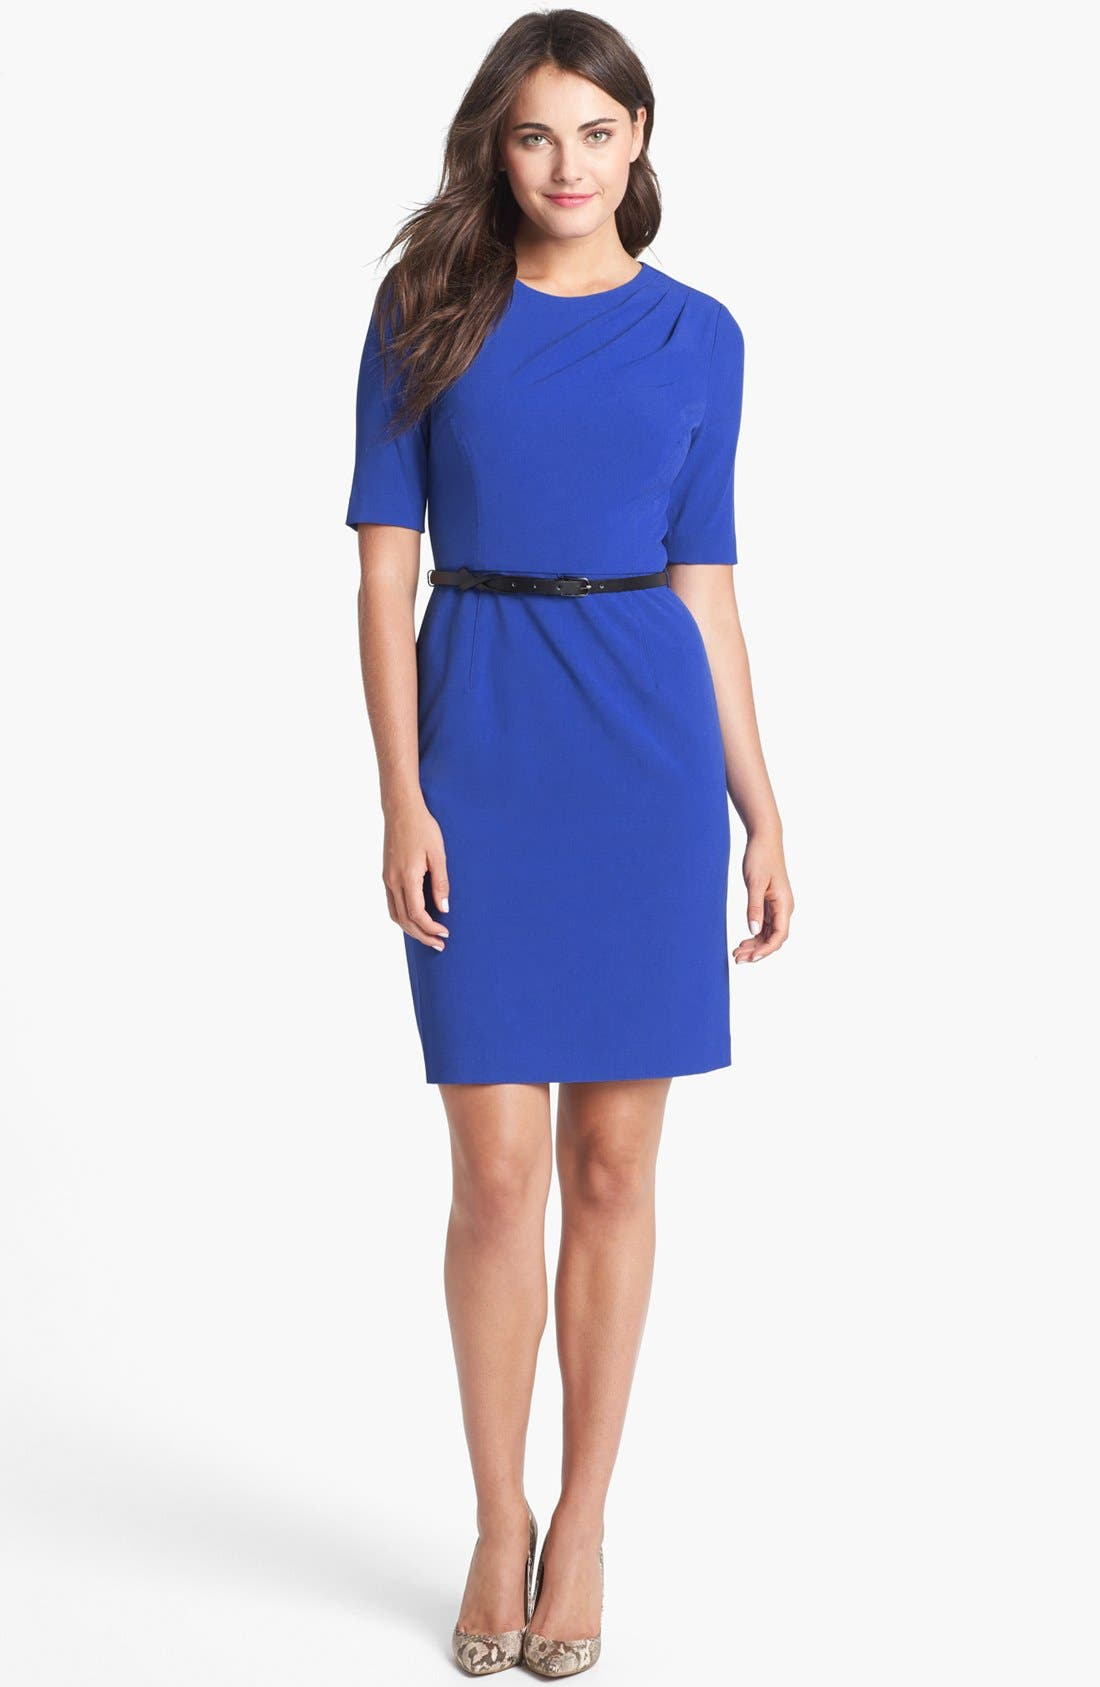 Alternate Image 1 Selected - Ivy & Blu for Maggy Boutique Sheath Dress